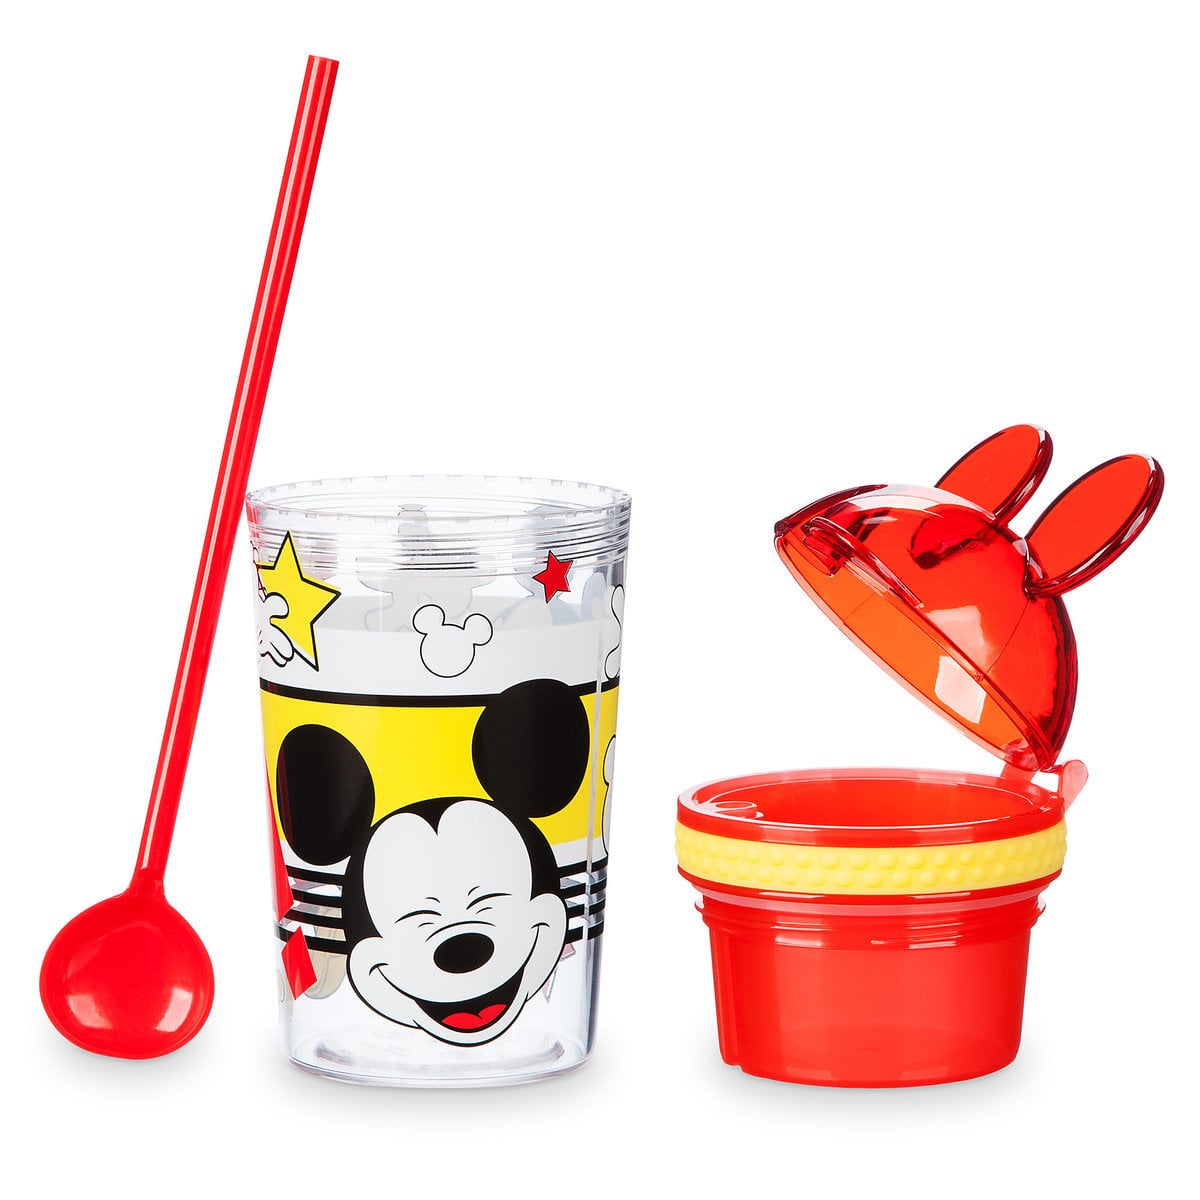 Adorable Mickey Mouse water bottle with snack cup for toddlers | Top 25 Disney Gift Ideas for Toddlers featured by top US Disney blogger, Marcie and the Mouse